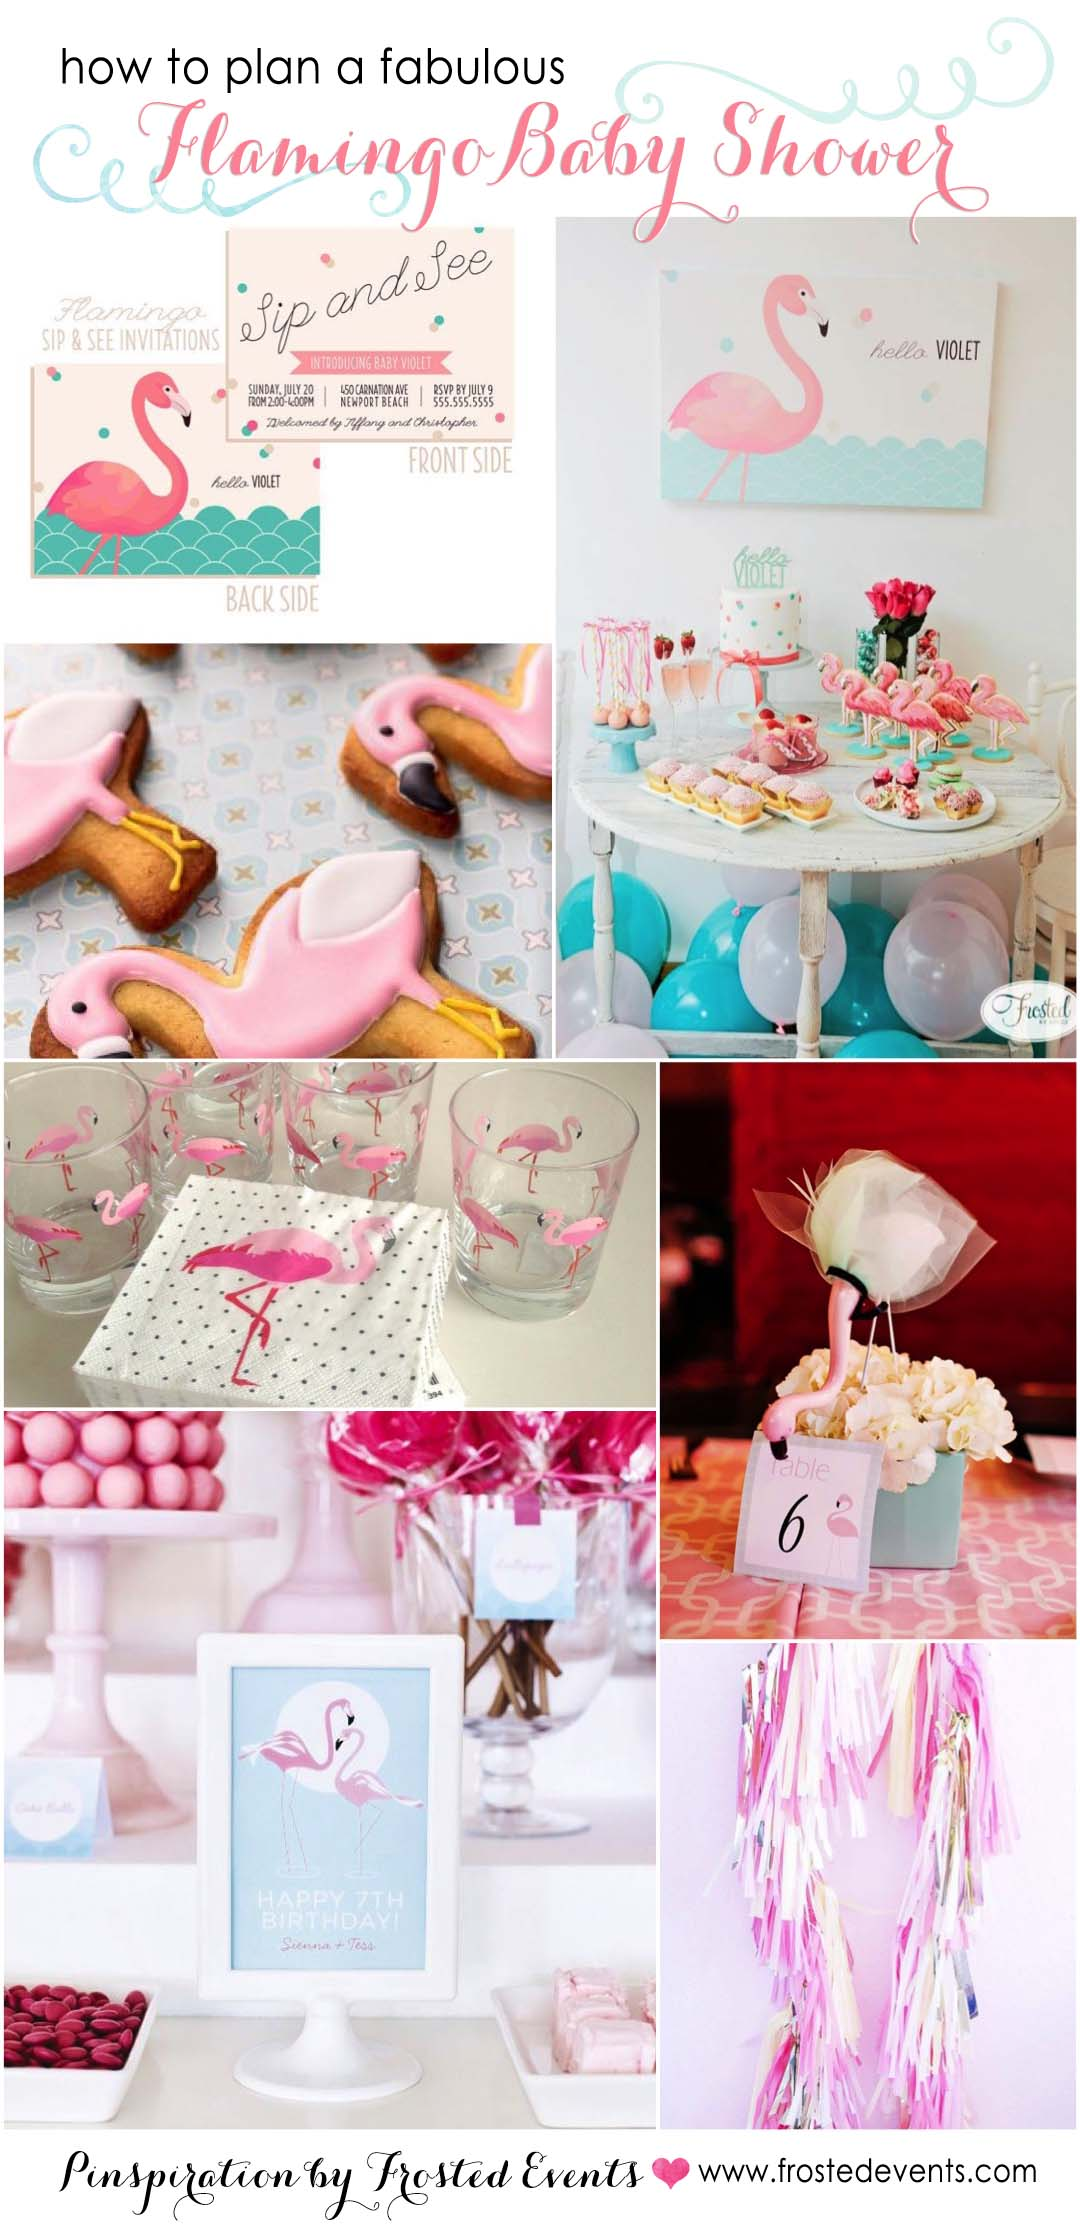 Flamingo Baby Shower Ideas and Inspiration from Frosted Events @frostedevents